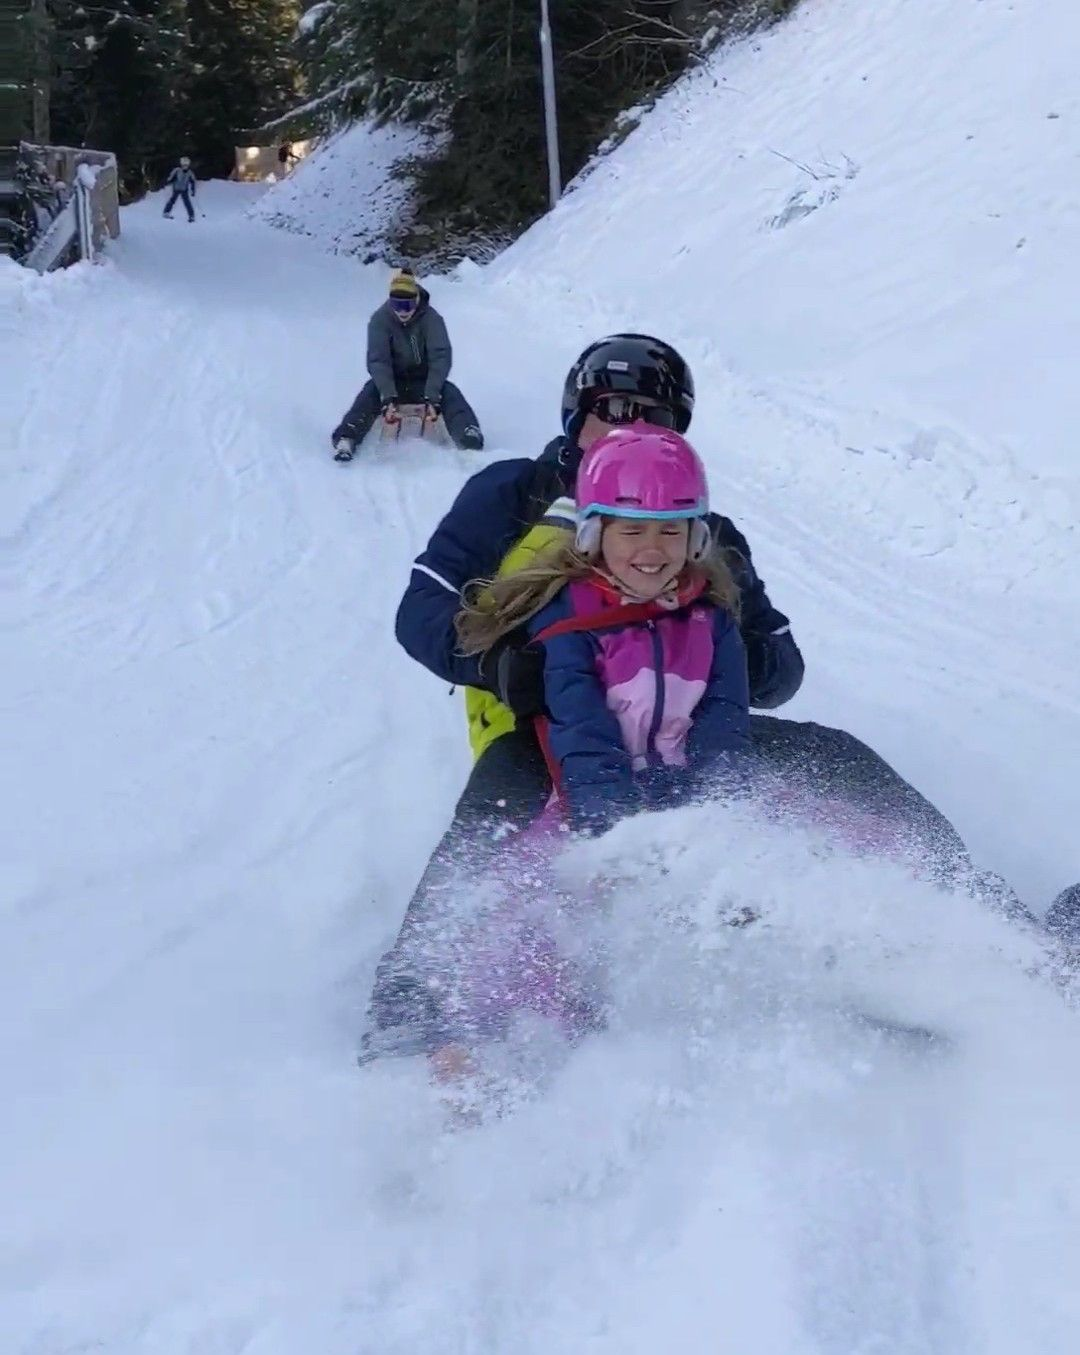 family skiing holiday - tabogganing